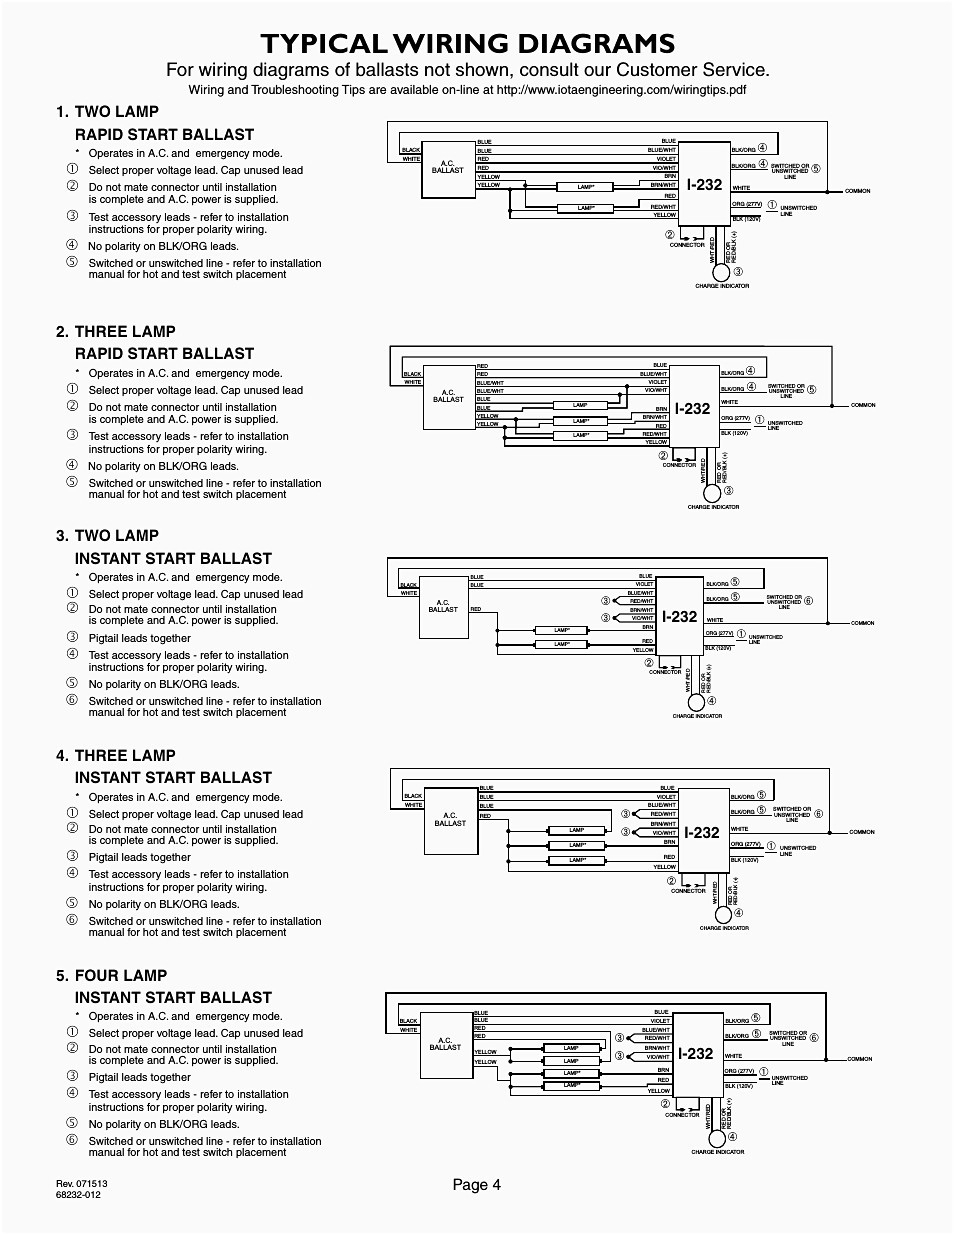 advance fluorescent ballast wiring diagram  | 2280 x 1650